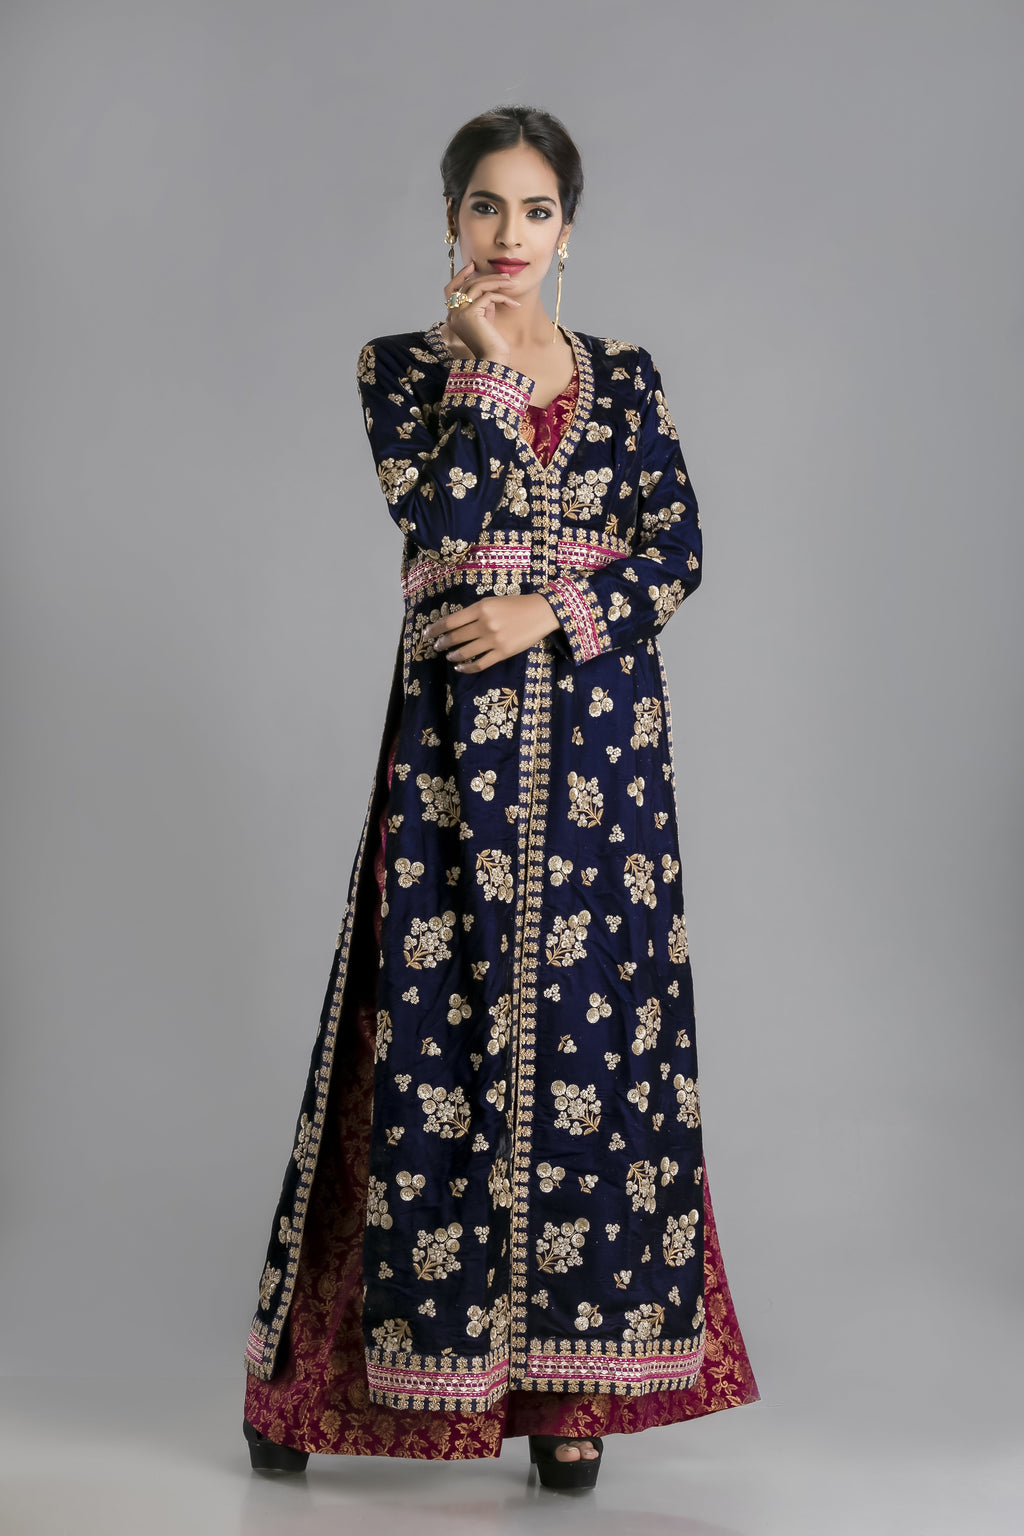 The Nile Blue Velvet Long Kurta Gown with Brocade Palazzo-The Glamour Edit